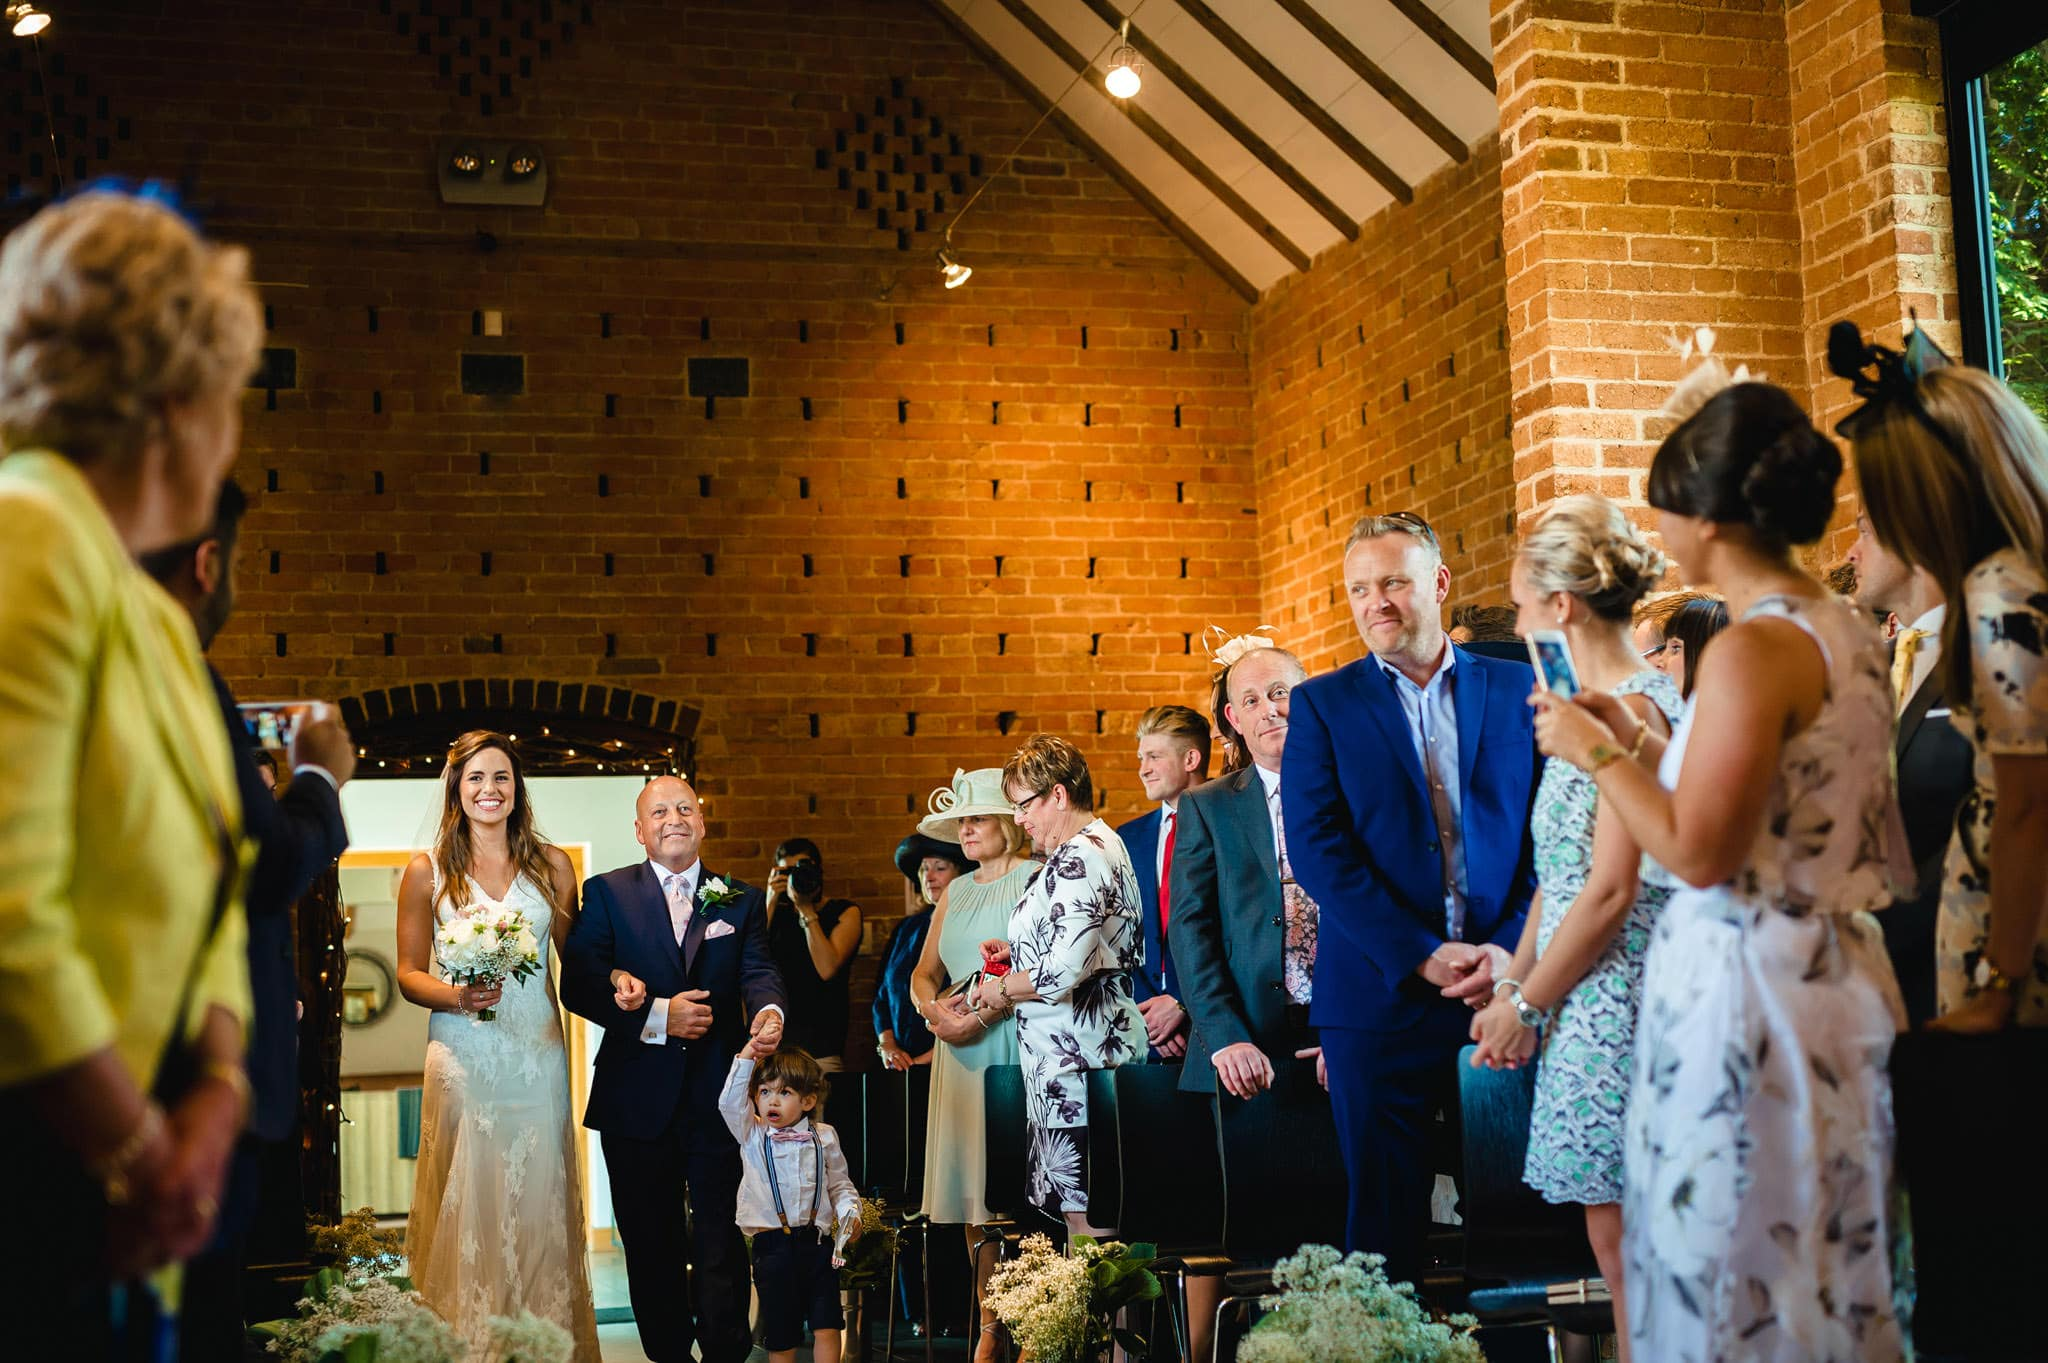 Wedding at Redhouse Barn in Stoke Prior, Worcestershire 61